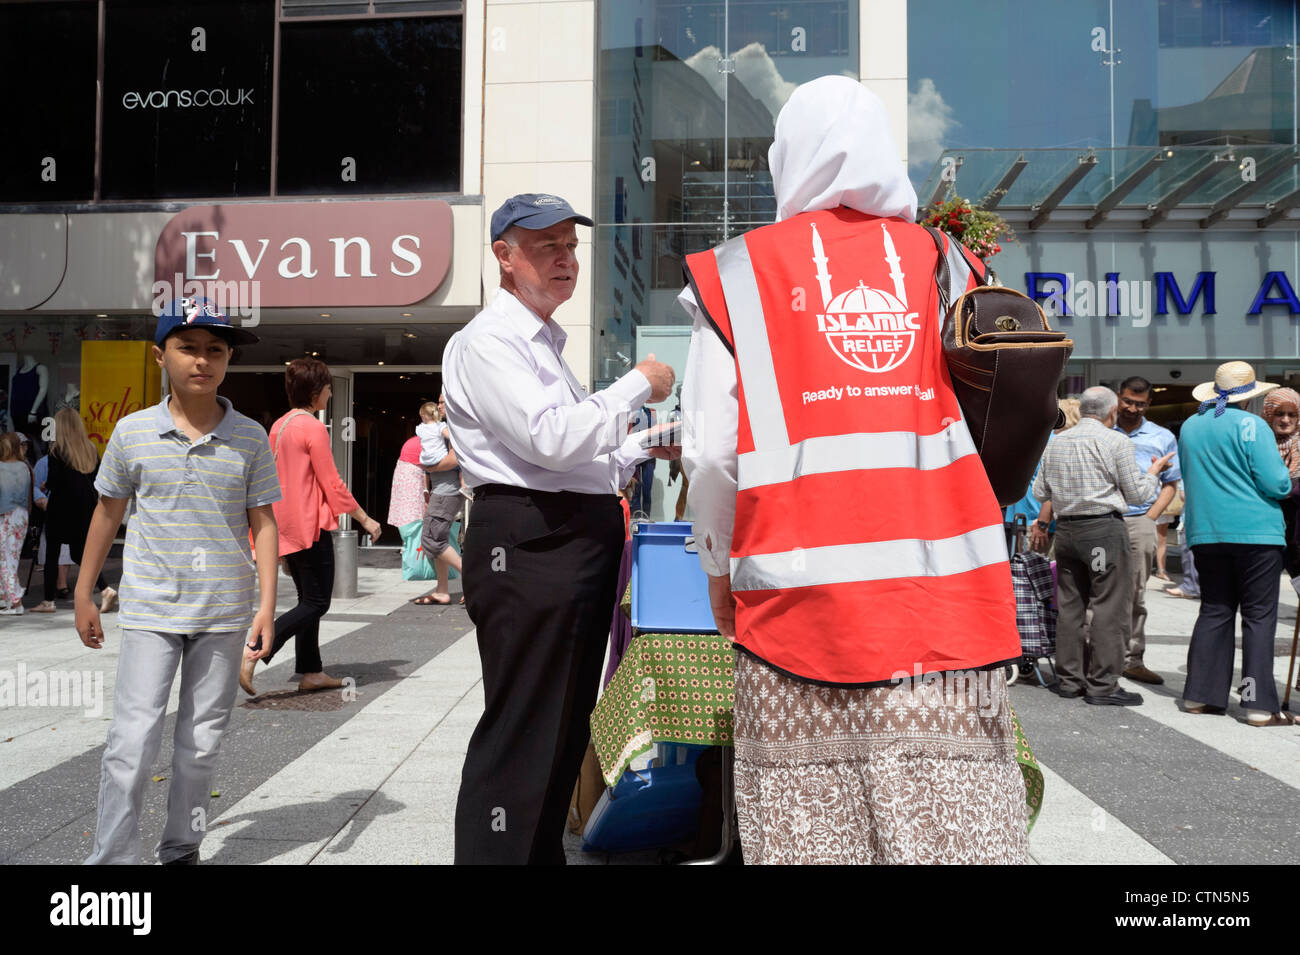 Islamic relief charity collector, Cardiff City Centre, South Wales, UK. - Stock Image